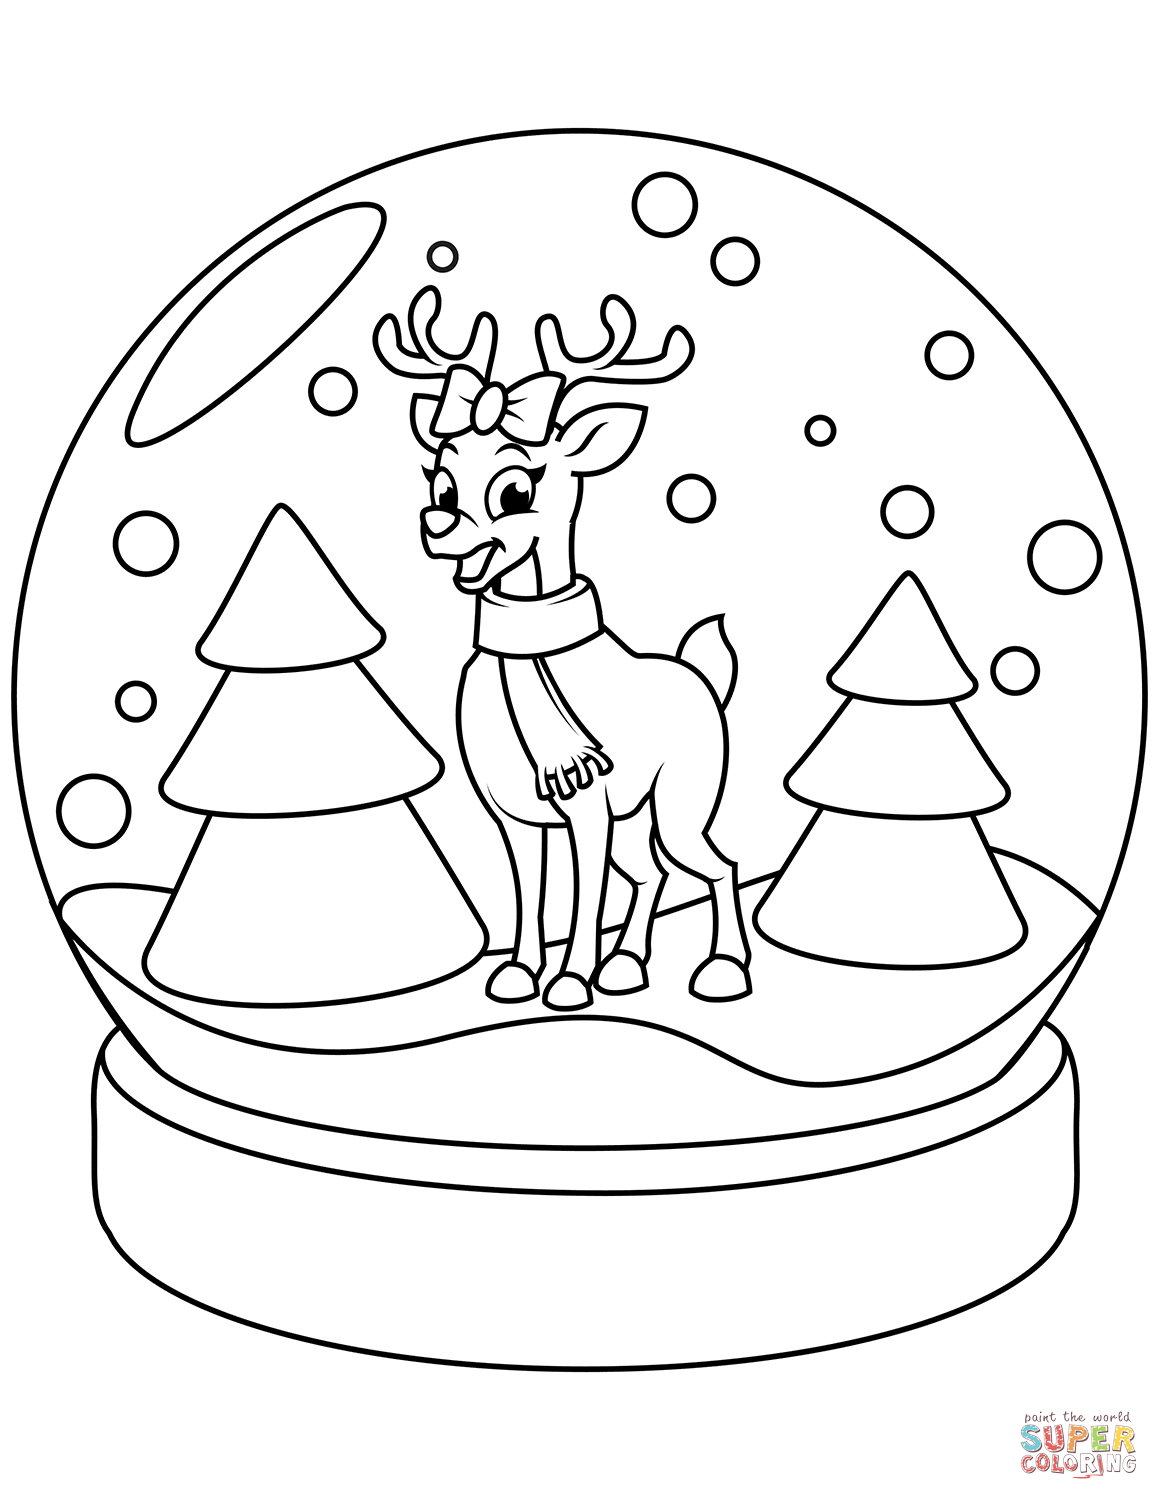 Christmas Reindeer Coloring Sheets With Snow Globe Page Free Printable